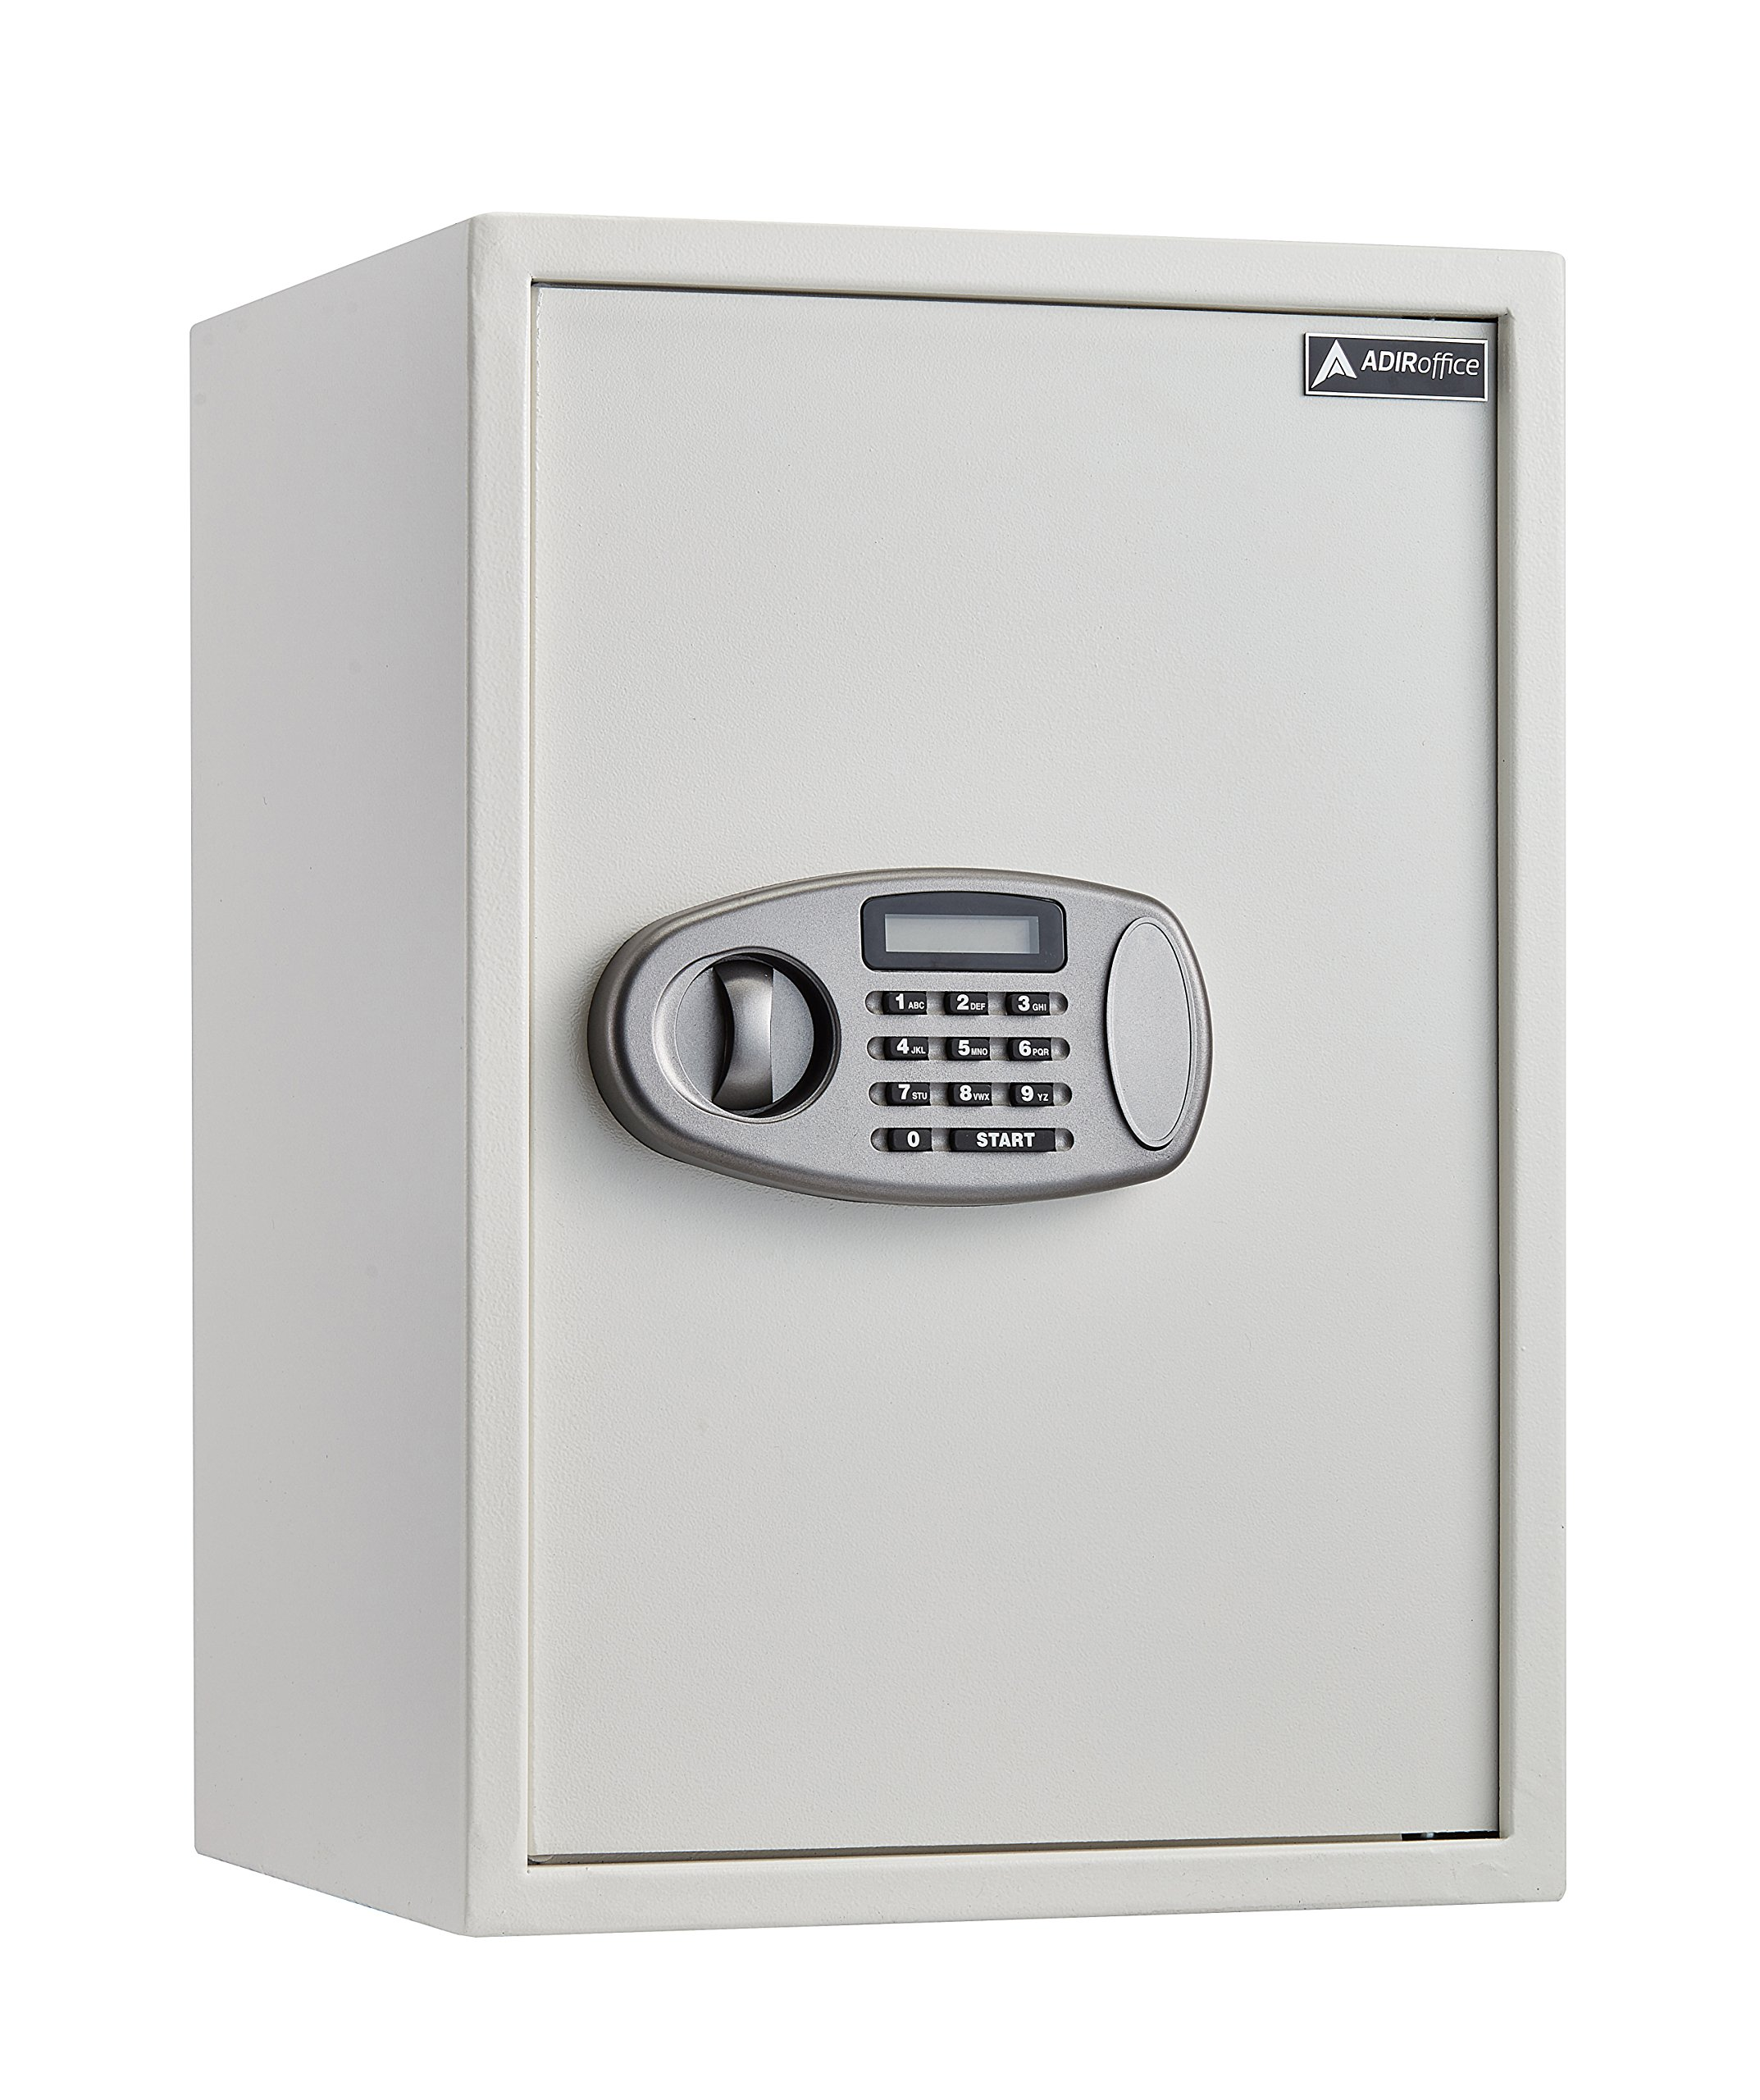 AdirOffice Security Safe with Digital Lock - White - 2.32 Cubic Feet